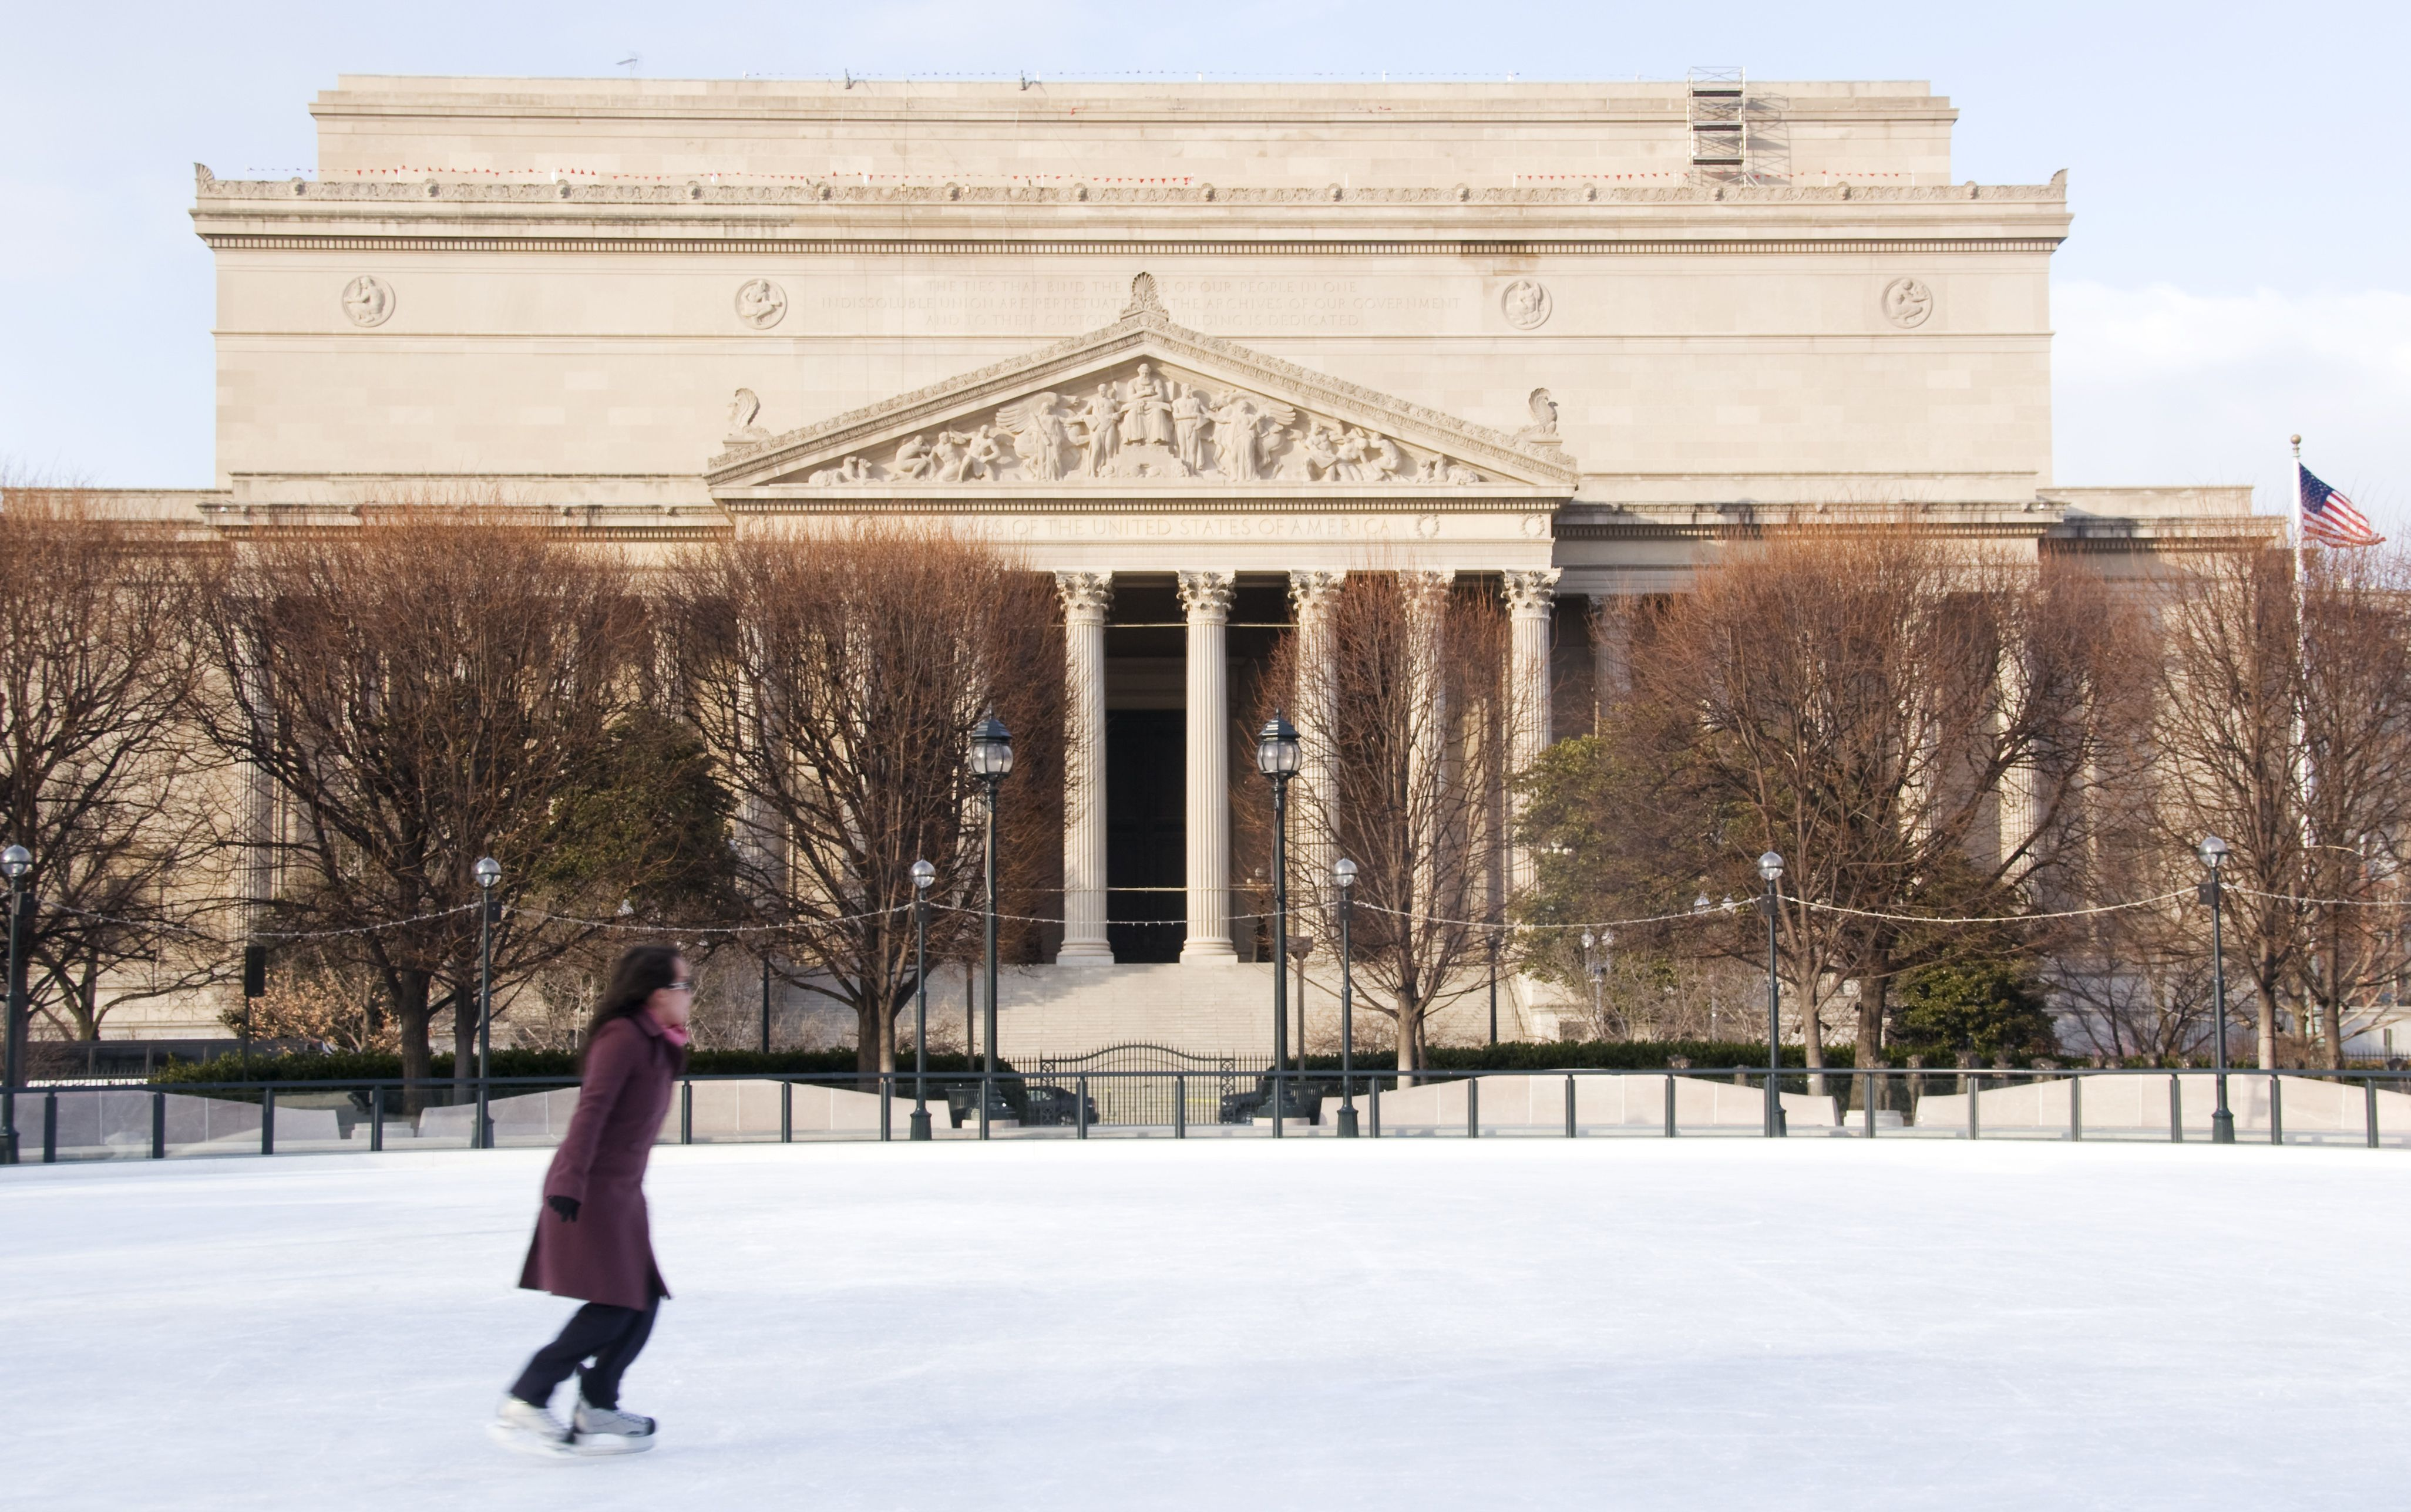 8 Outdoor Ice Skating Rinks In The Washington, D.C. Area